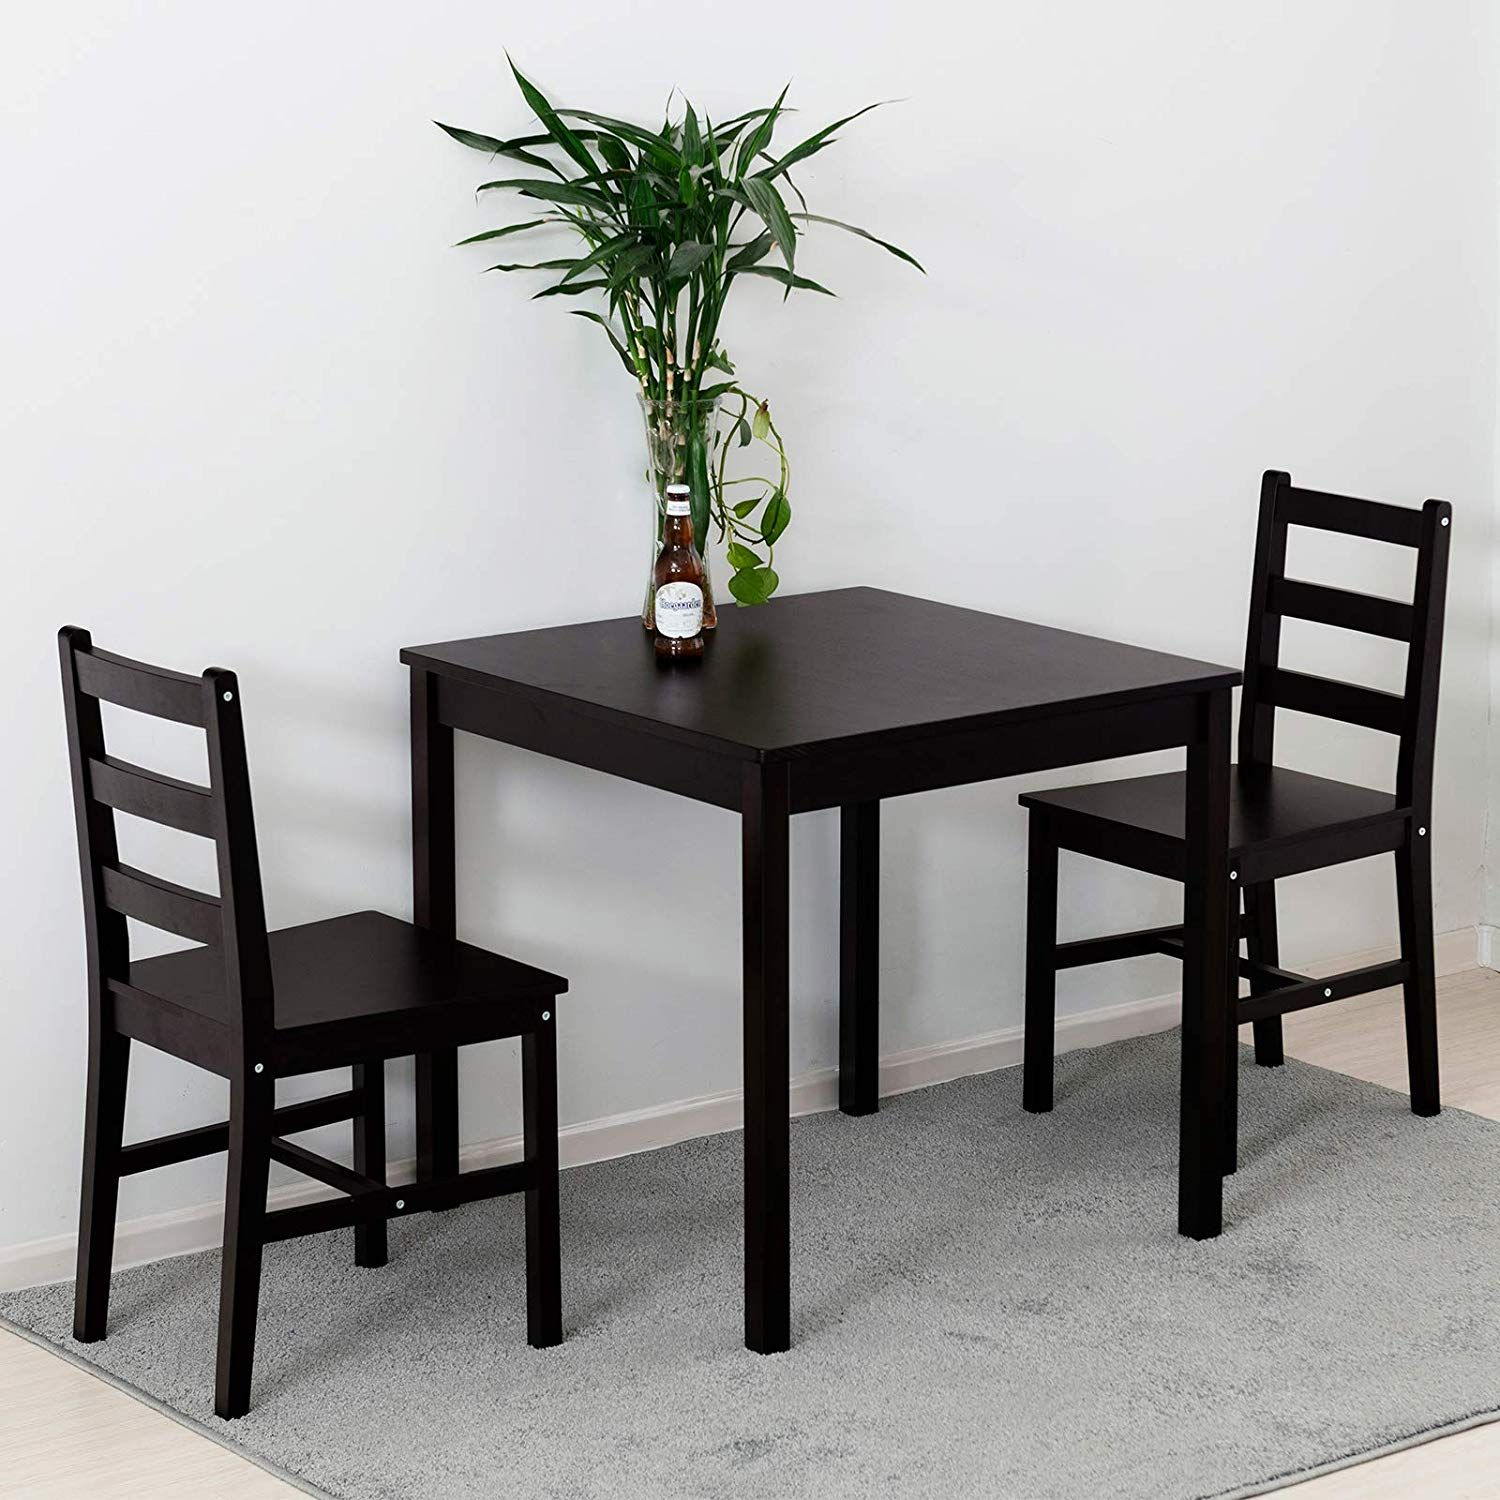 Mecor 3 Pc Wood Dining Set Wooden Kitchen Table Set With 2 Chairs